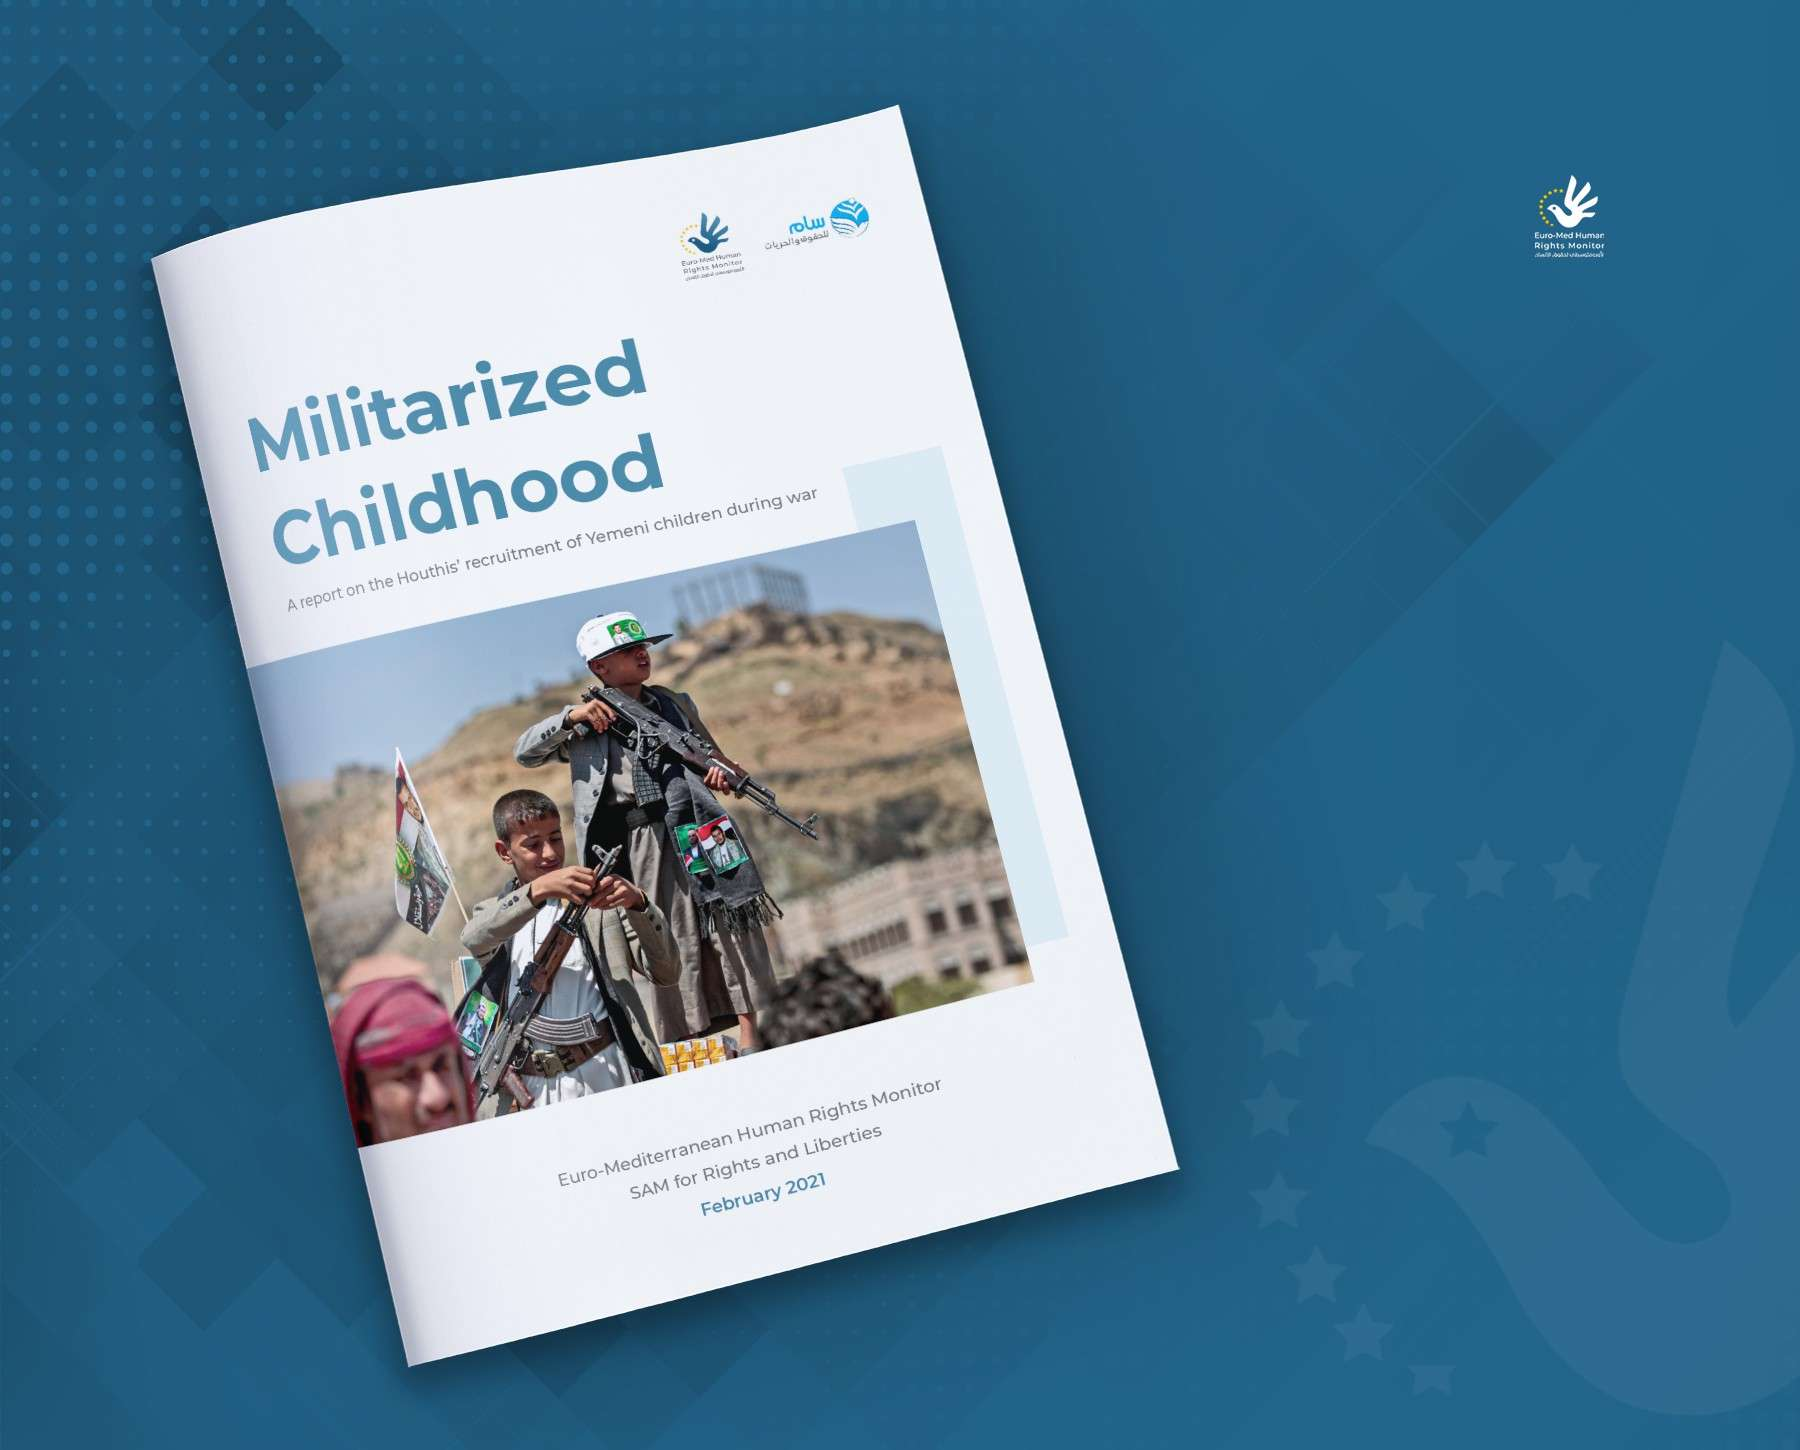 Euro-Med Monitor & SAM's new report: Houthis recruited more than 10,000 children in Yemen